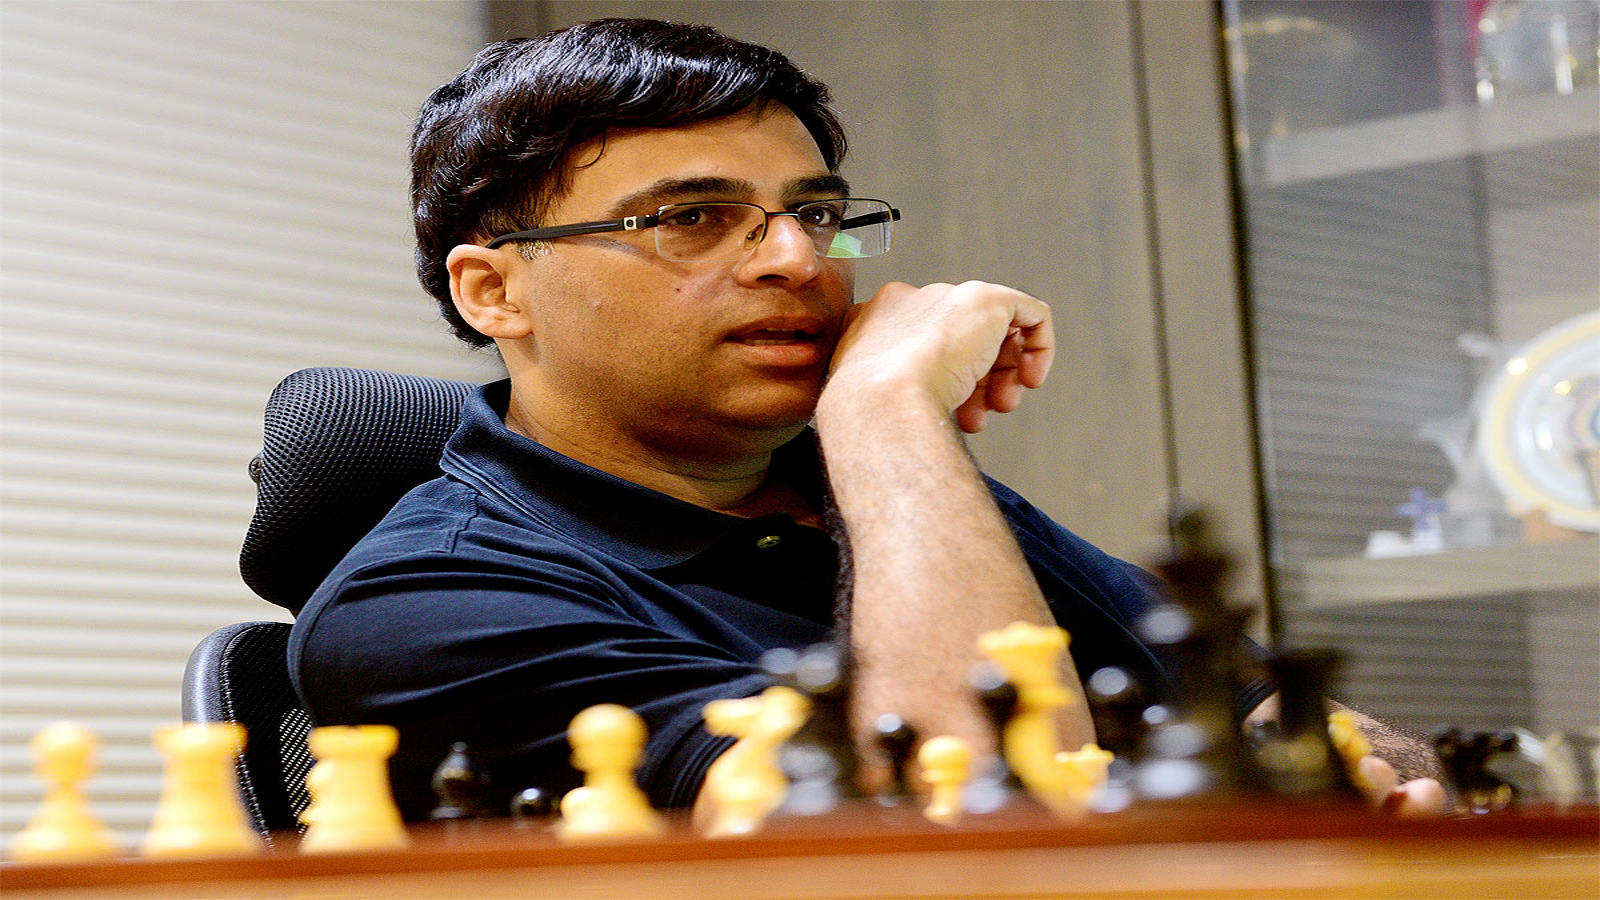 performance-in-olympiad-shows-the-depth-of-indian-chess-viswanathan-anand